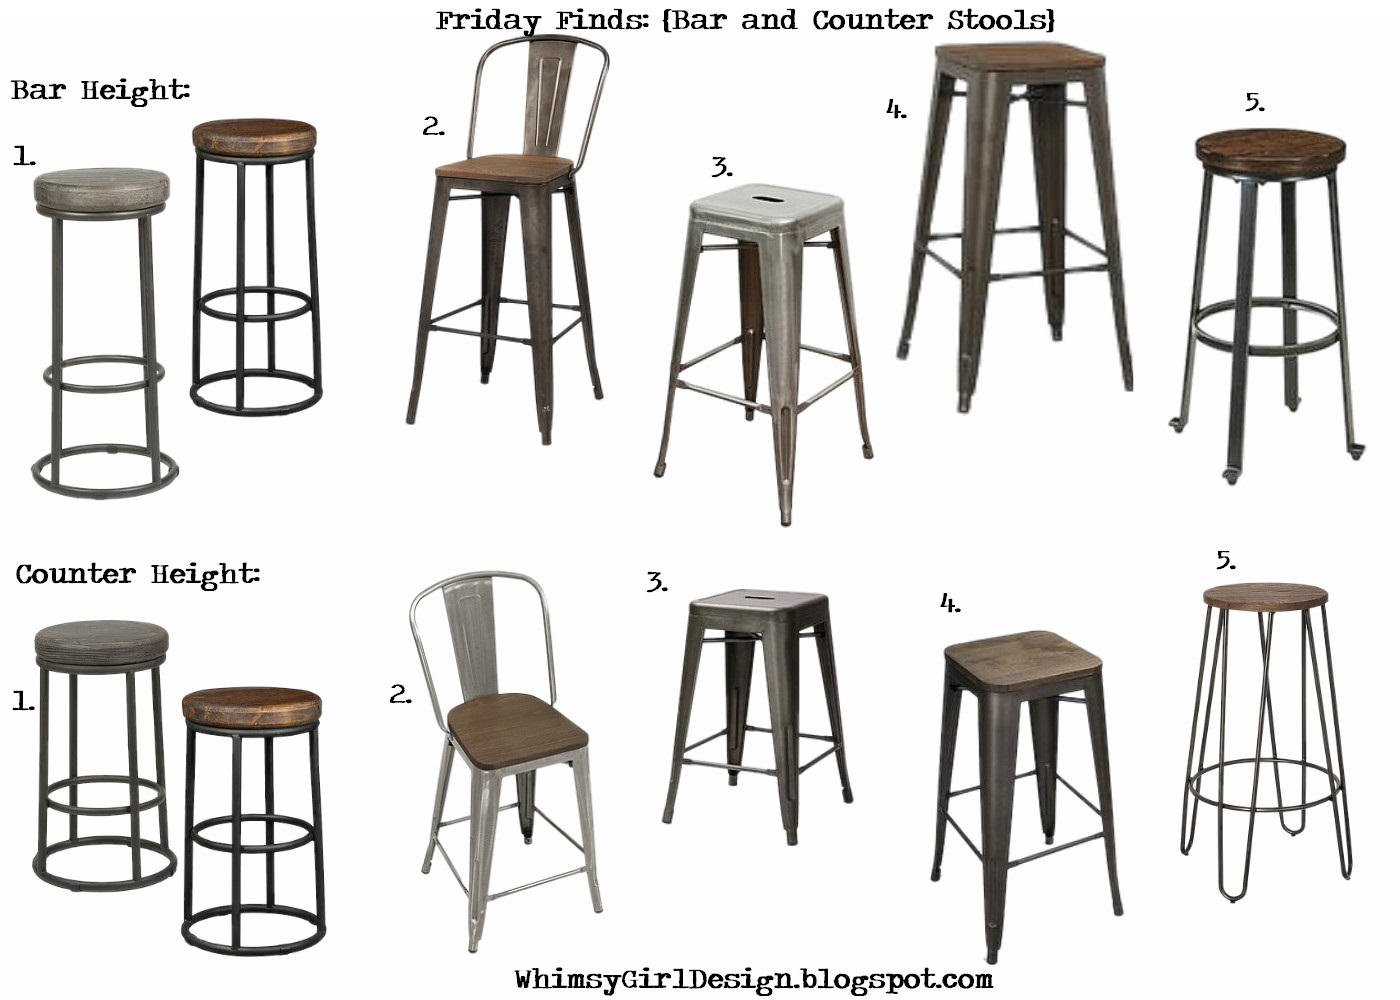 Miraculous Whimsy Girl Friday Finds Bar And Counter Stools Spiritservingveterans Wood Chair Design Ideas Spiritservingveteransorg